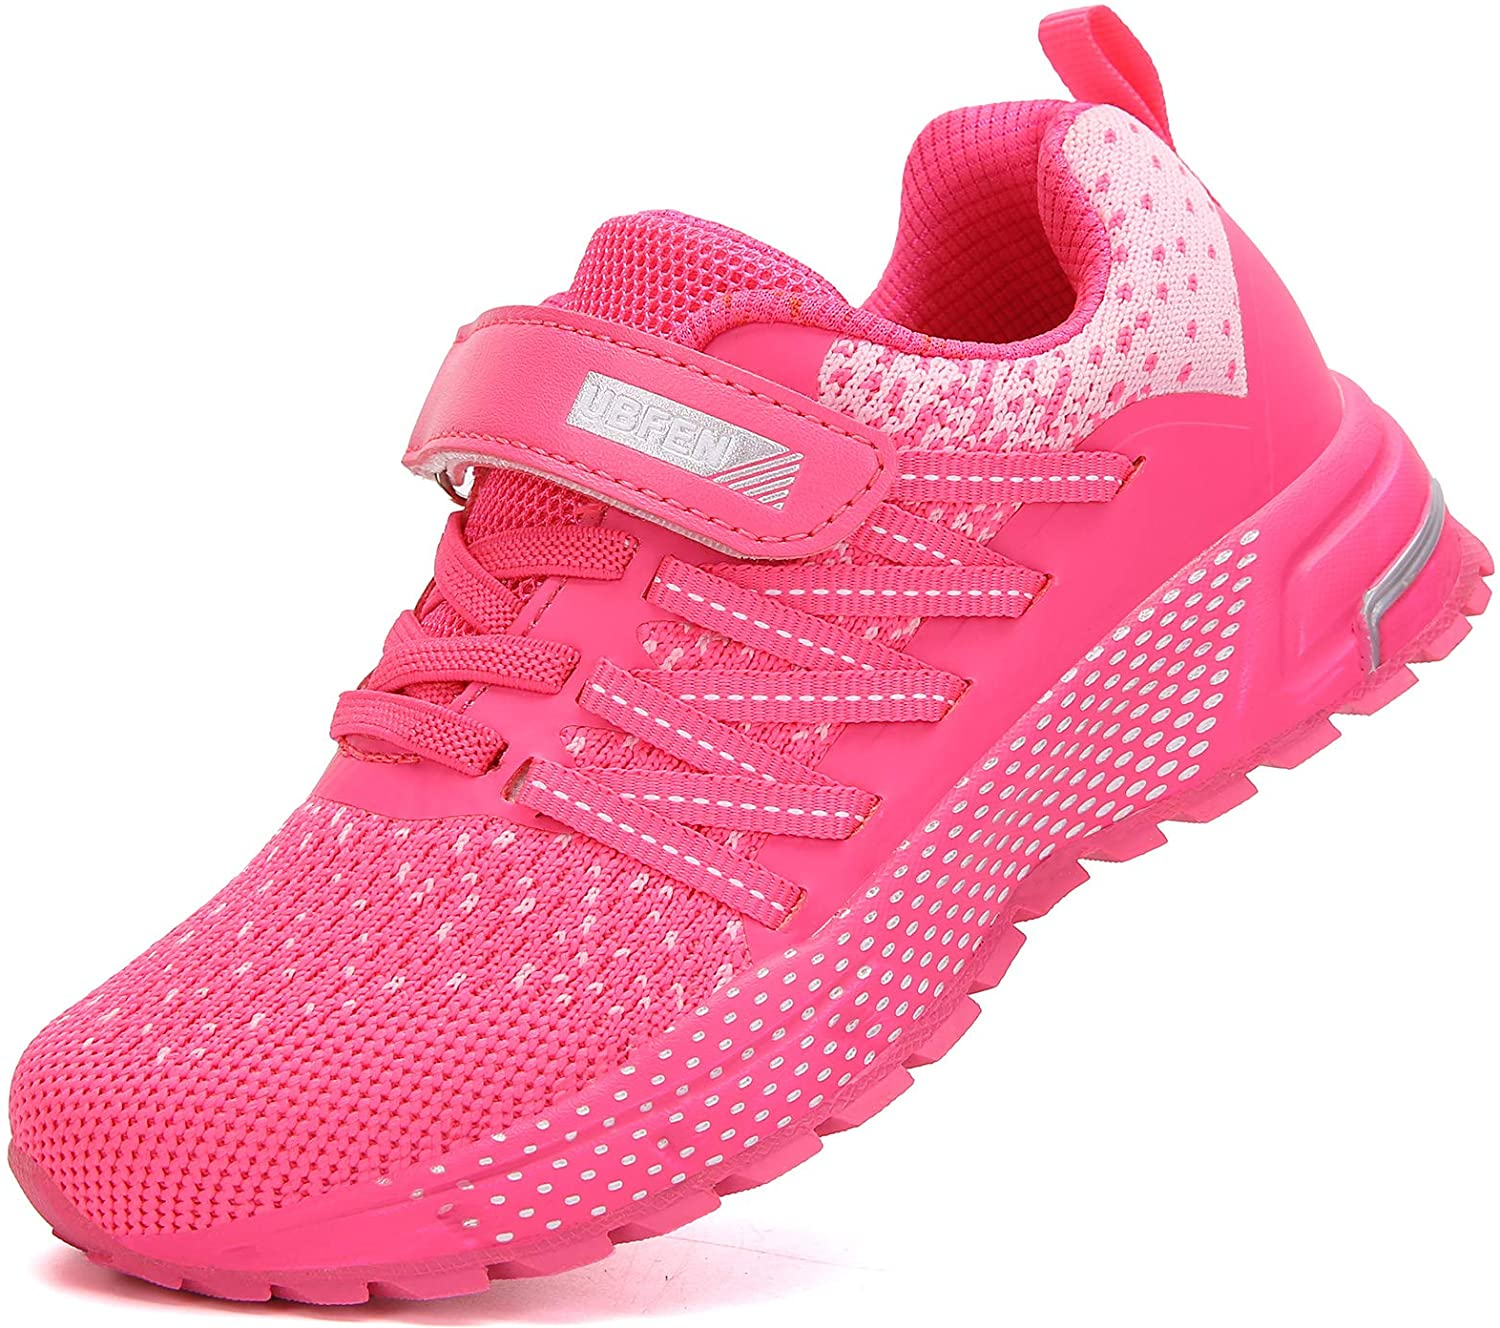 BOYS RUNNING TRAINERS NEW KIDS GIRLS SHOCK ABSORBING SPORTS SCHOOL SHOES SIZE